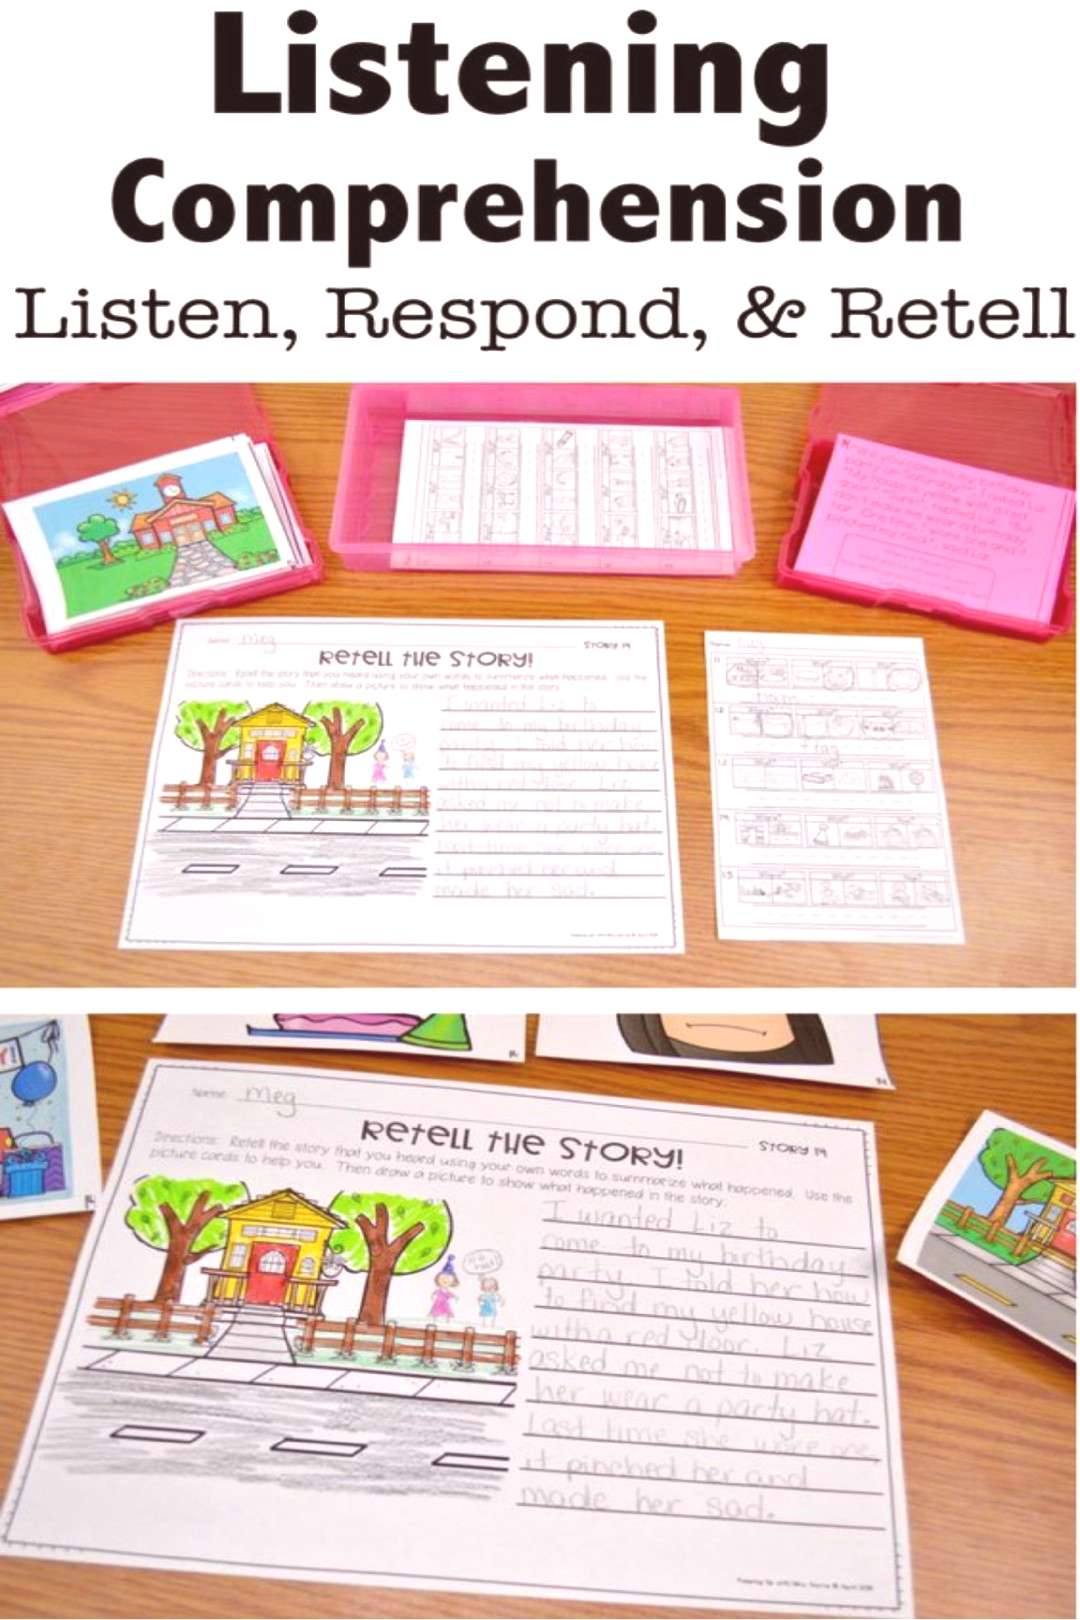 Listening Comprehension 5 Tips for Identifying Deficits - Keeping Up with Mrs. Harris Listening Co